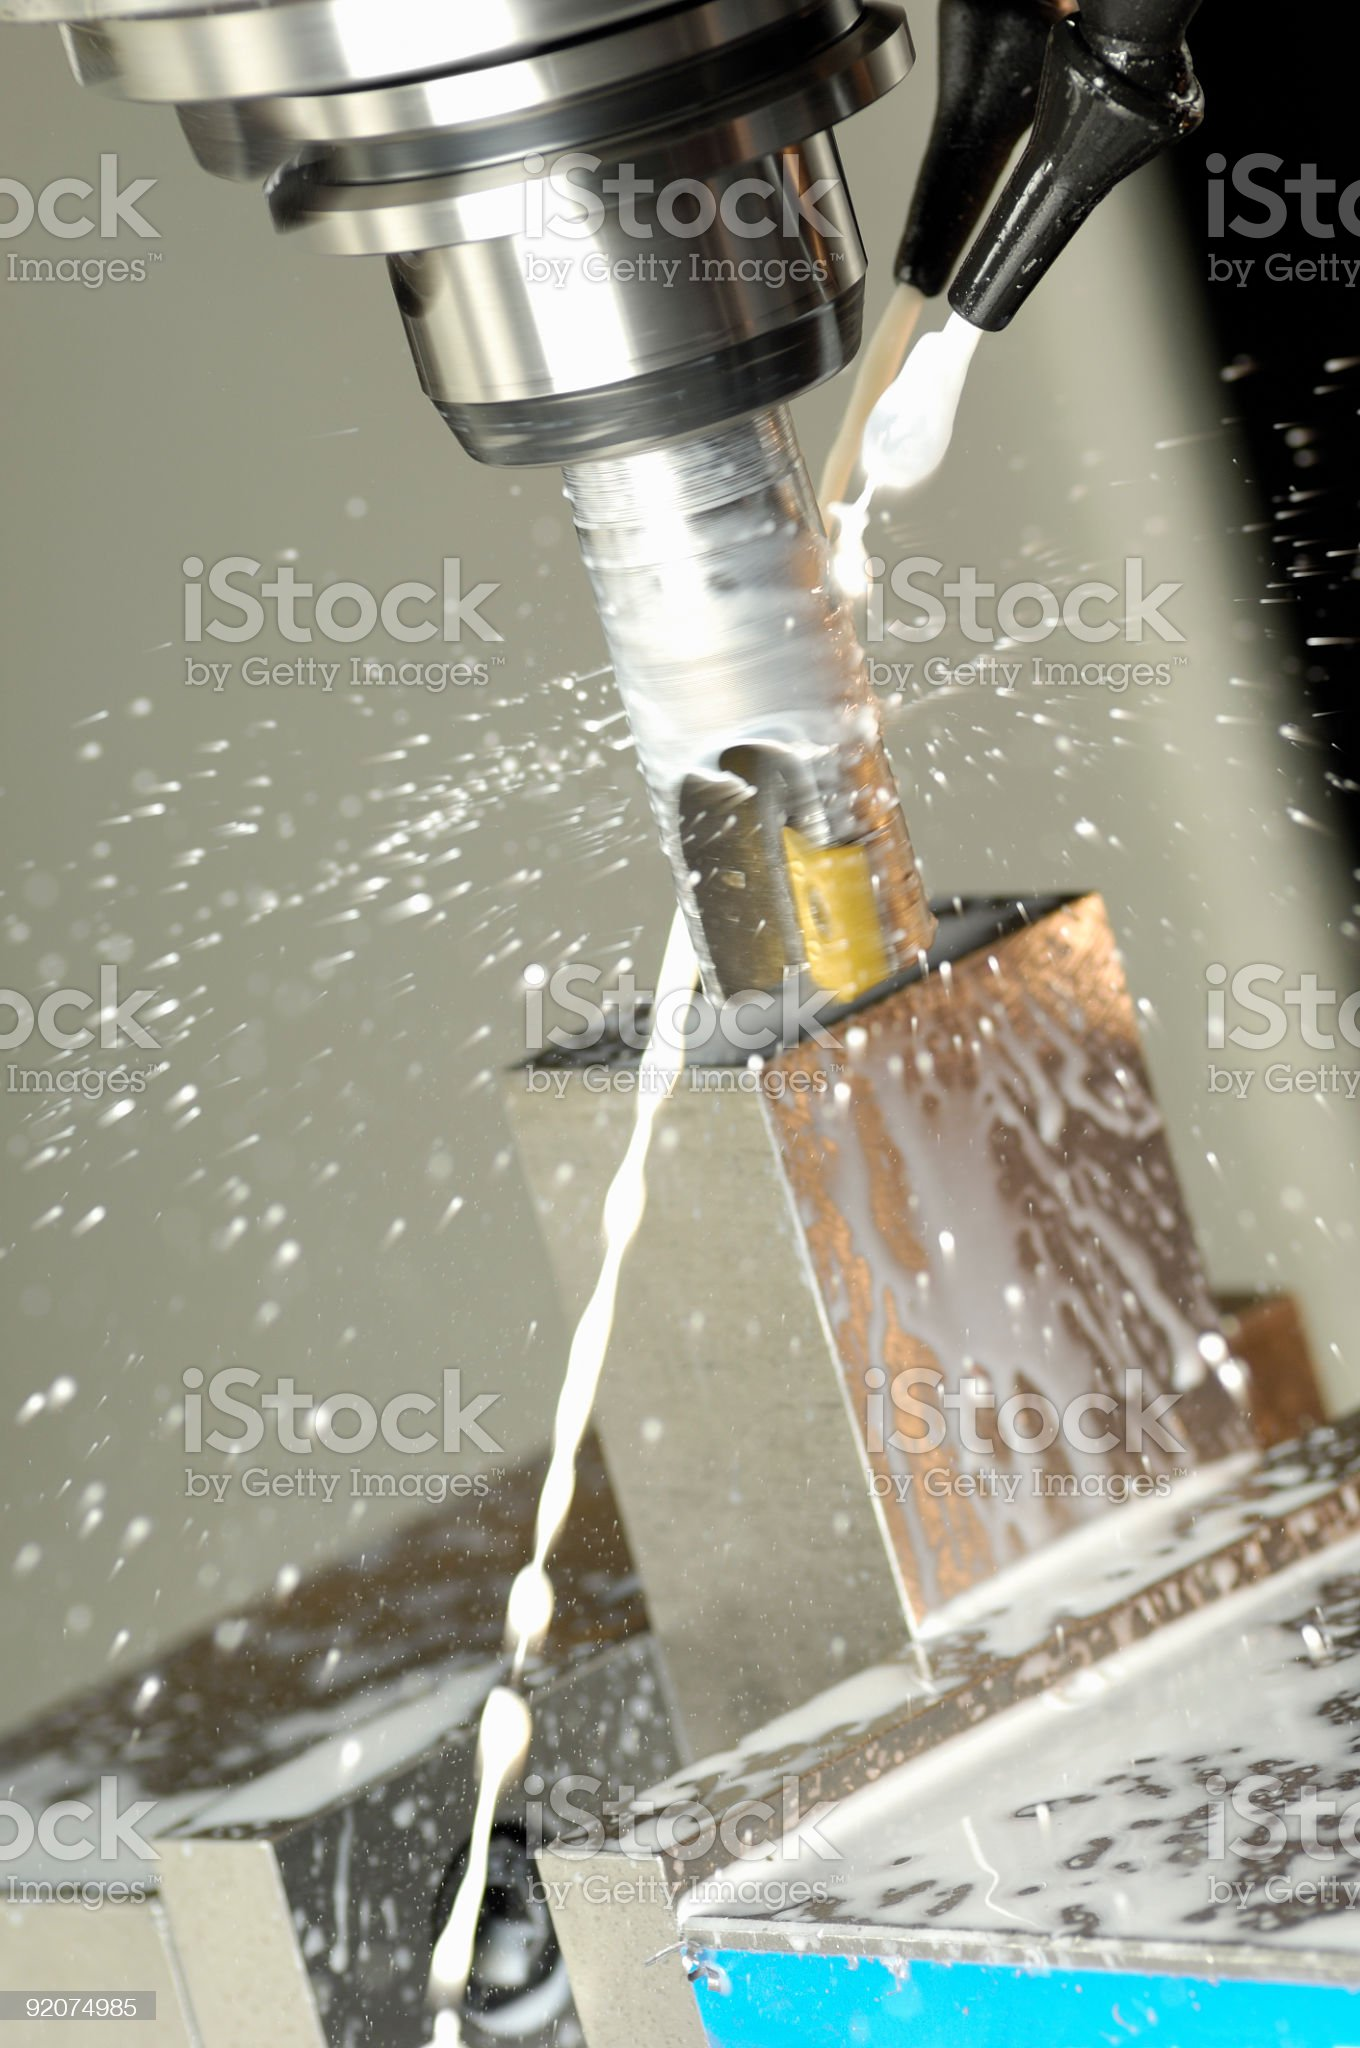 CNC machine tool cutting steel in a machine shop. royalty-free stock photo